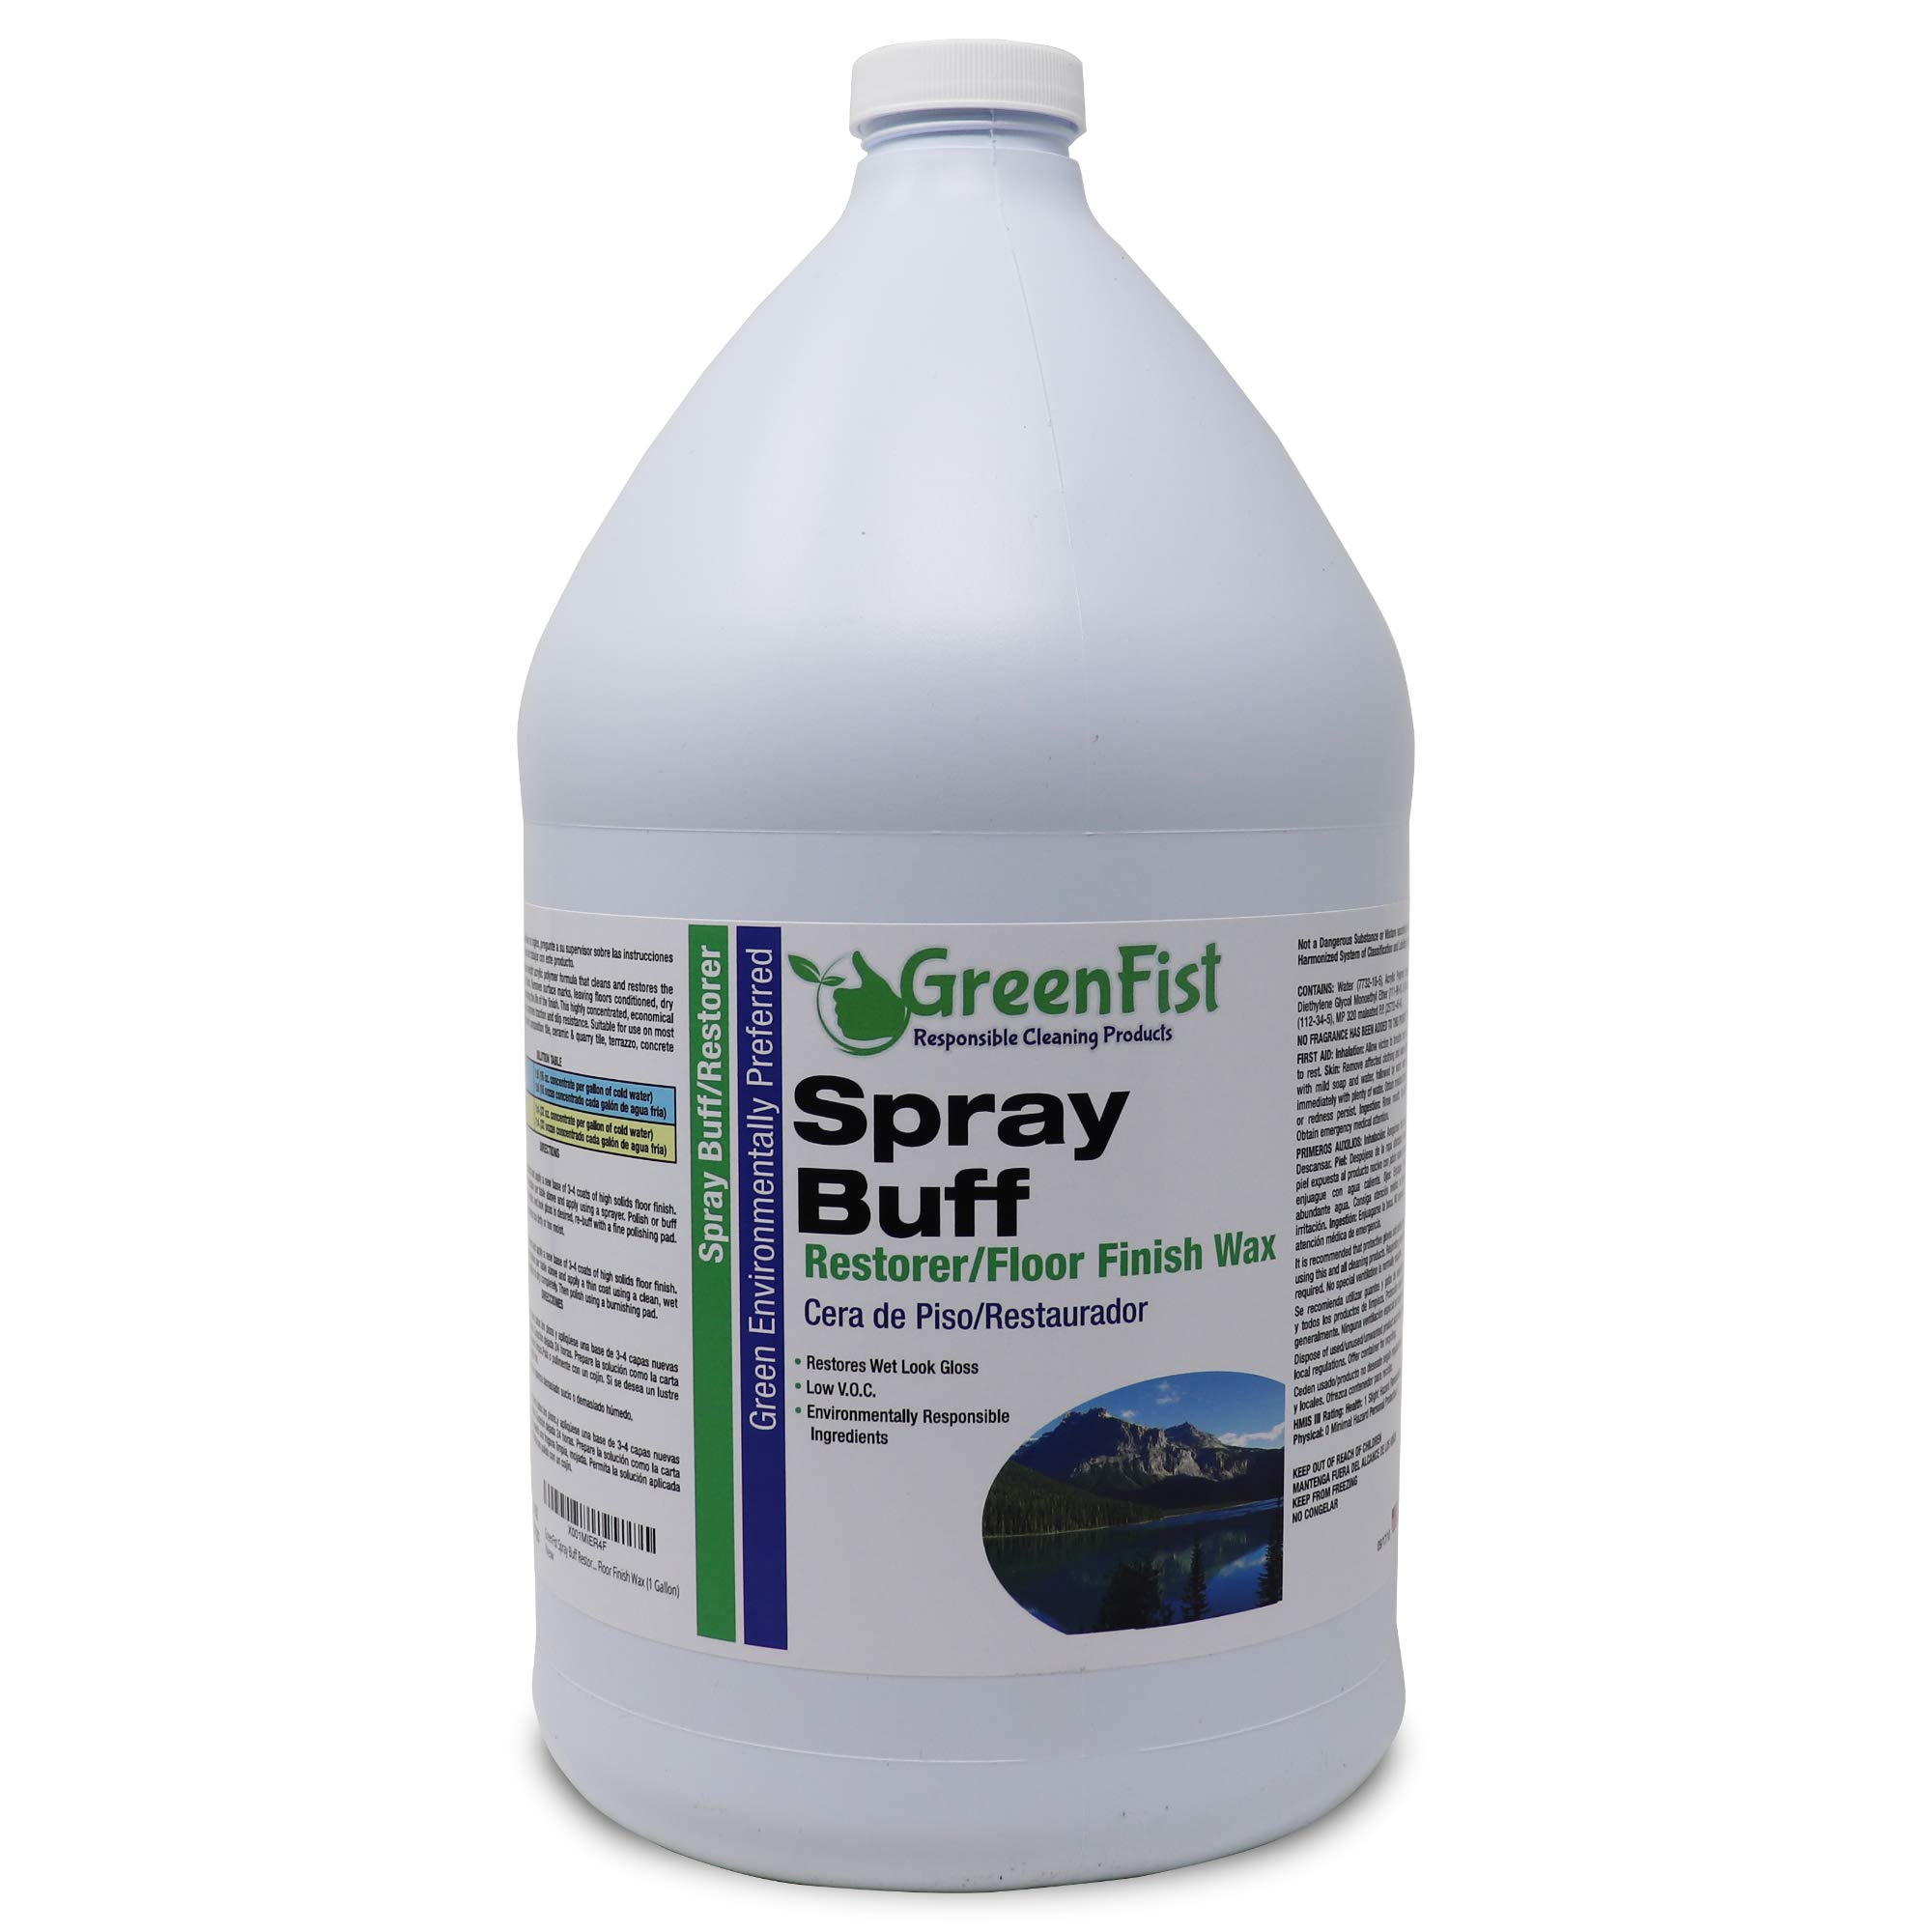 GreenFist Spray Buff Restorer Renewing Floor Finish Wax Polisher Buffer[ Removes Surface Marks, Conditioned, Dry and Spotless Floors ], 1 Gallon